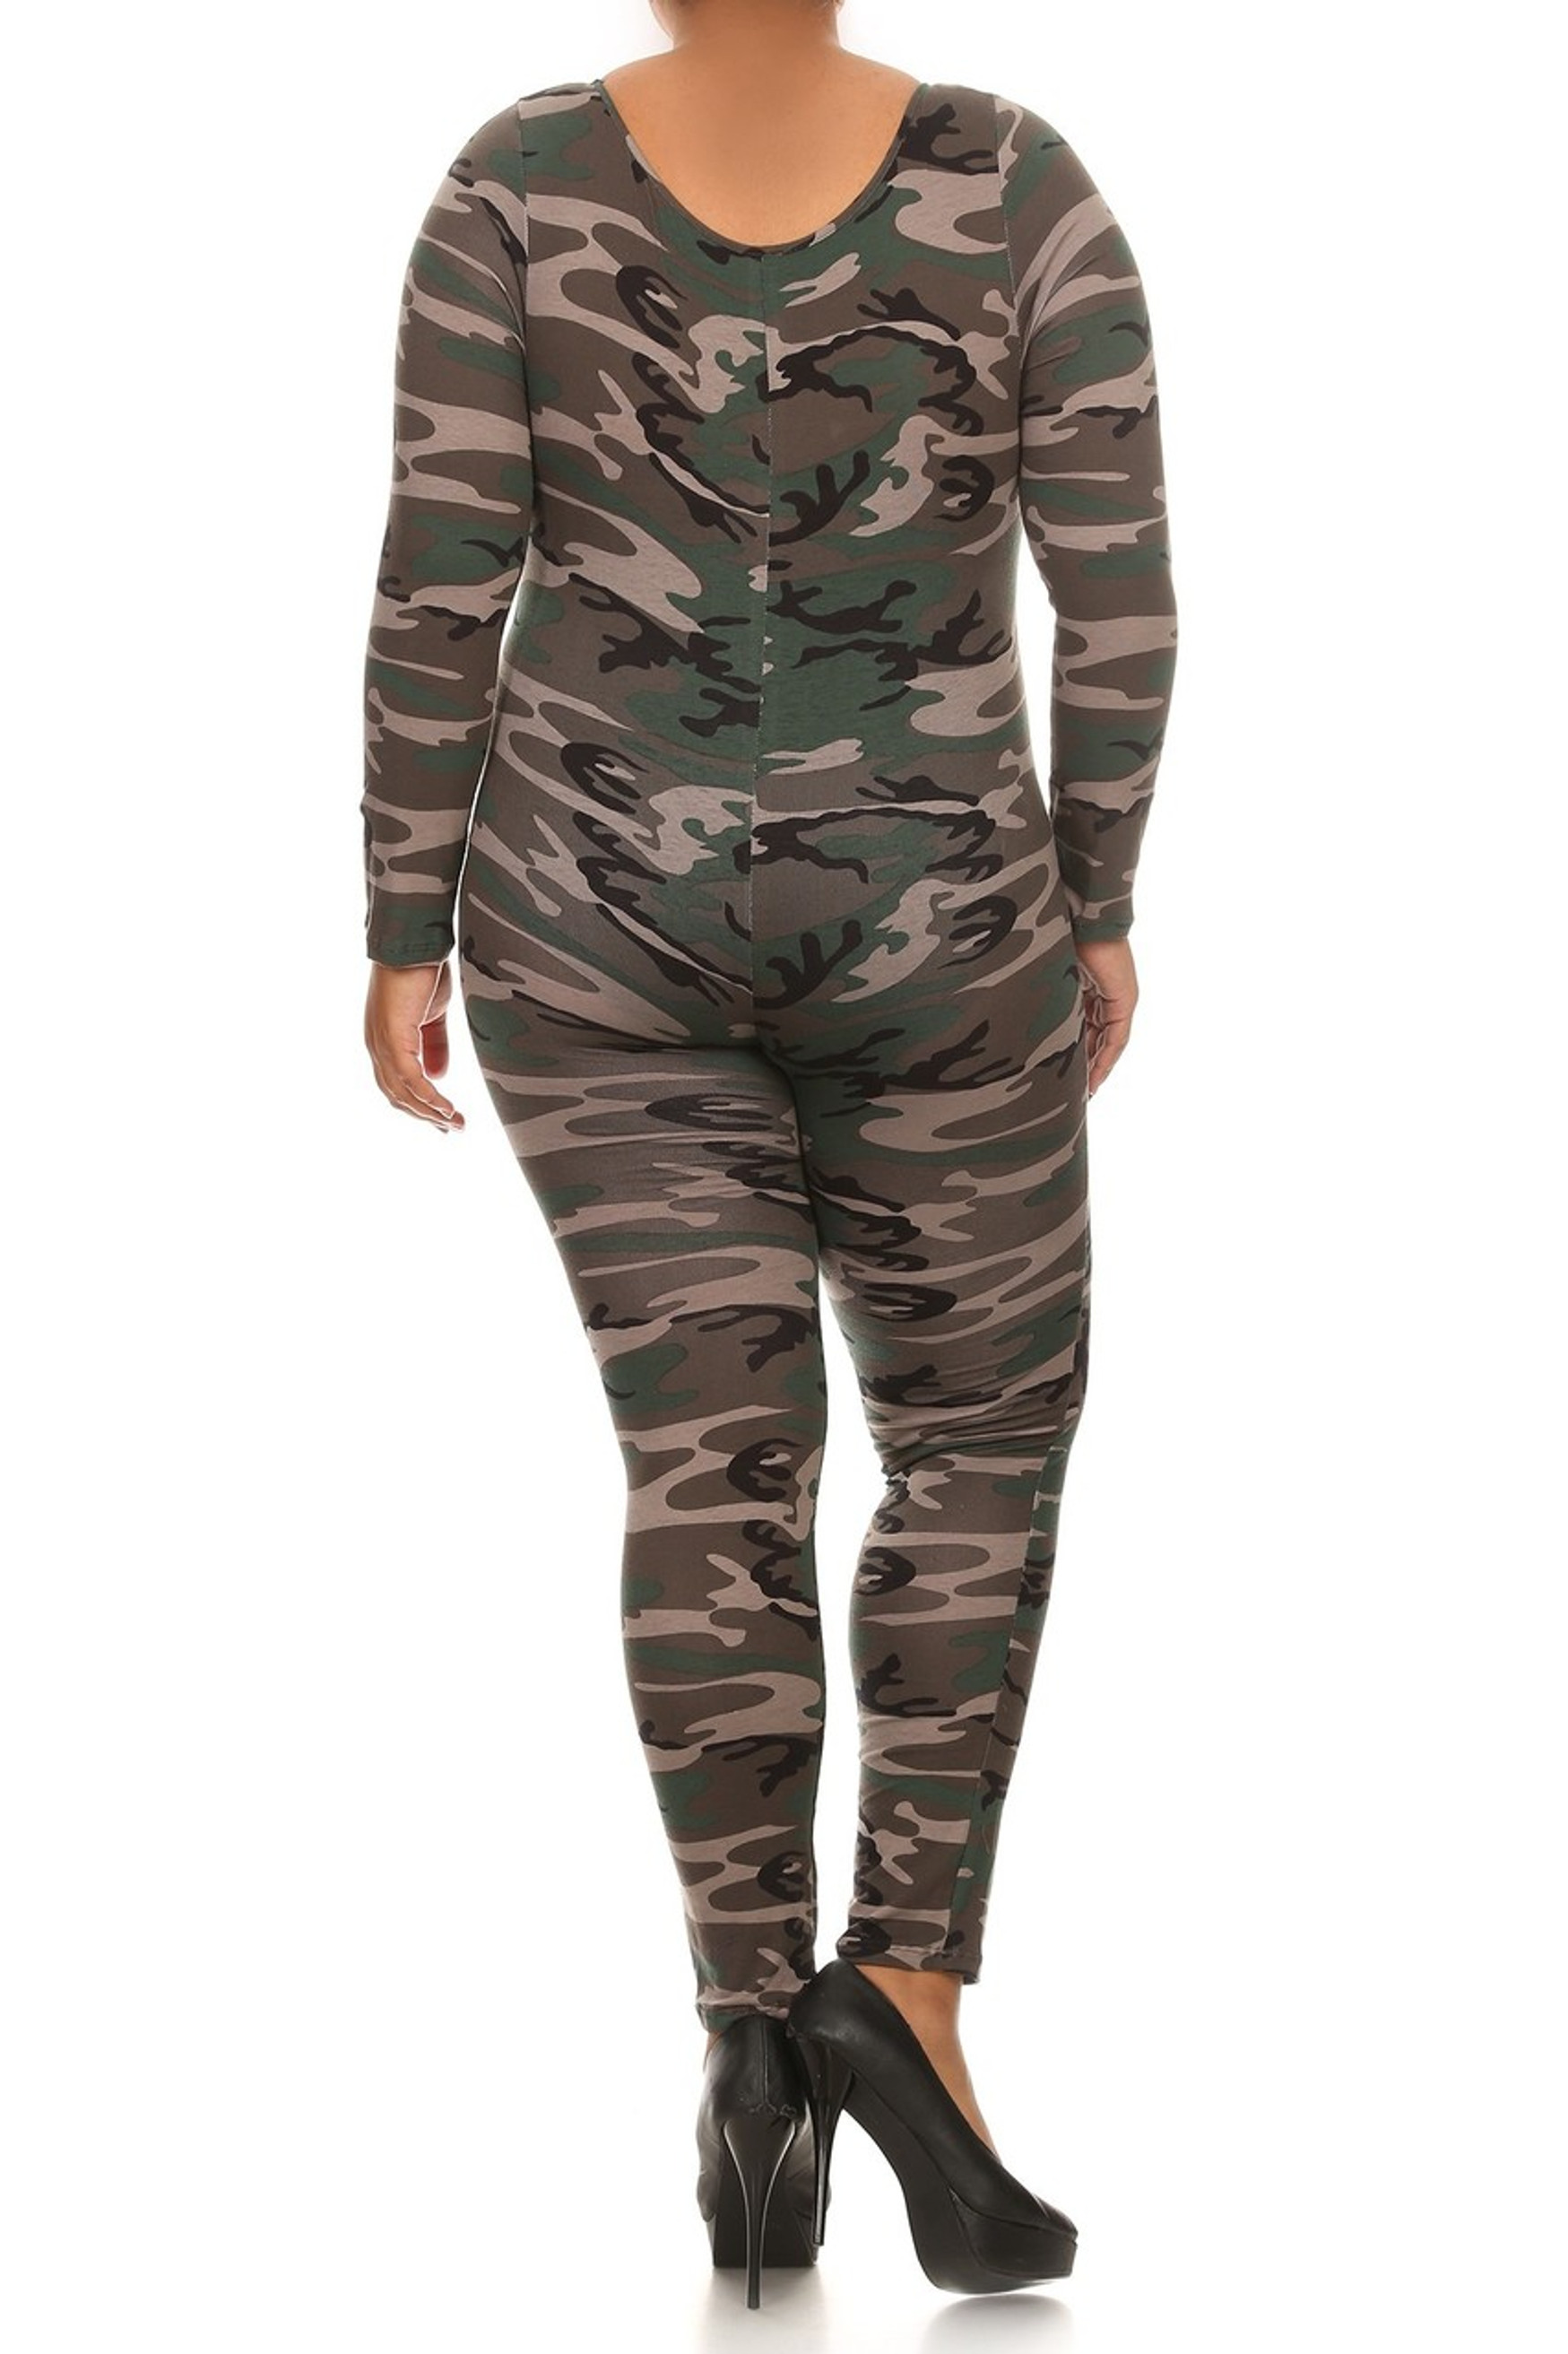 Back image of our plus size Camouflage Full Jumpsuit with its all over authentic camo print, full body coverage and made in the USA